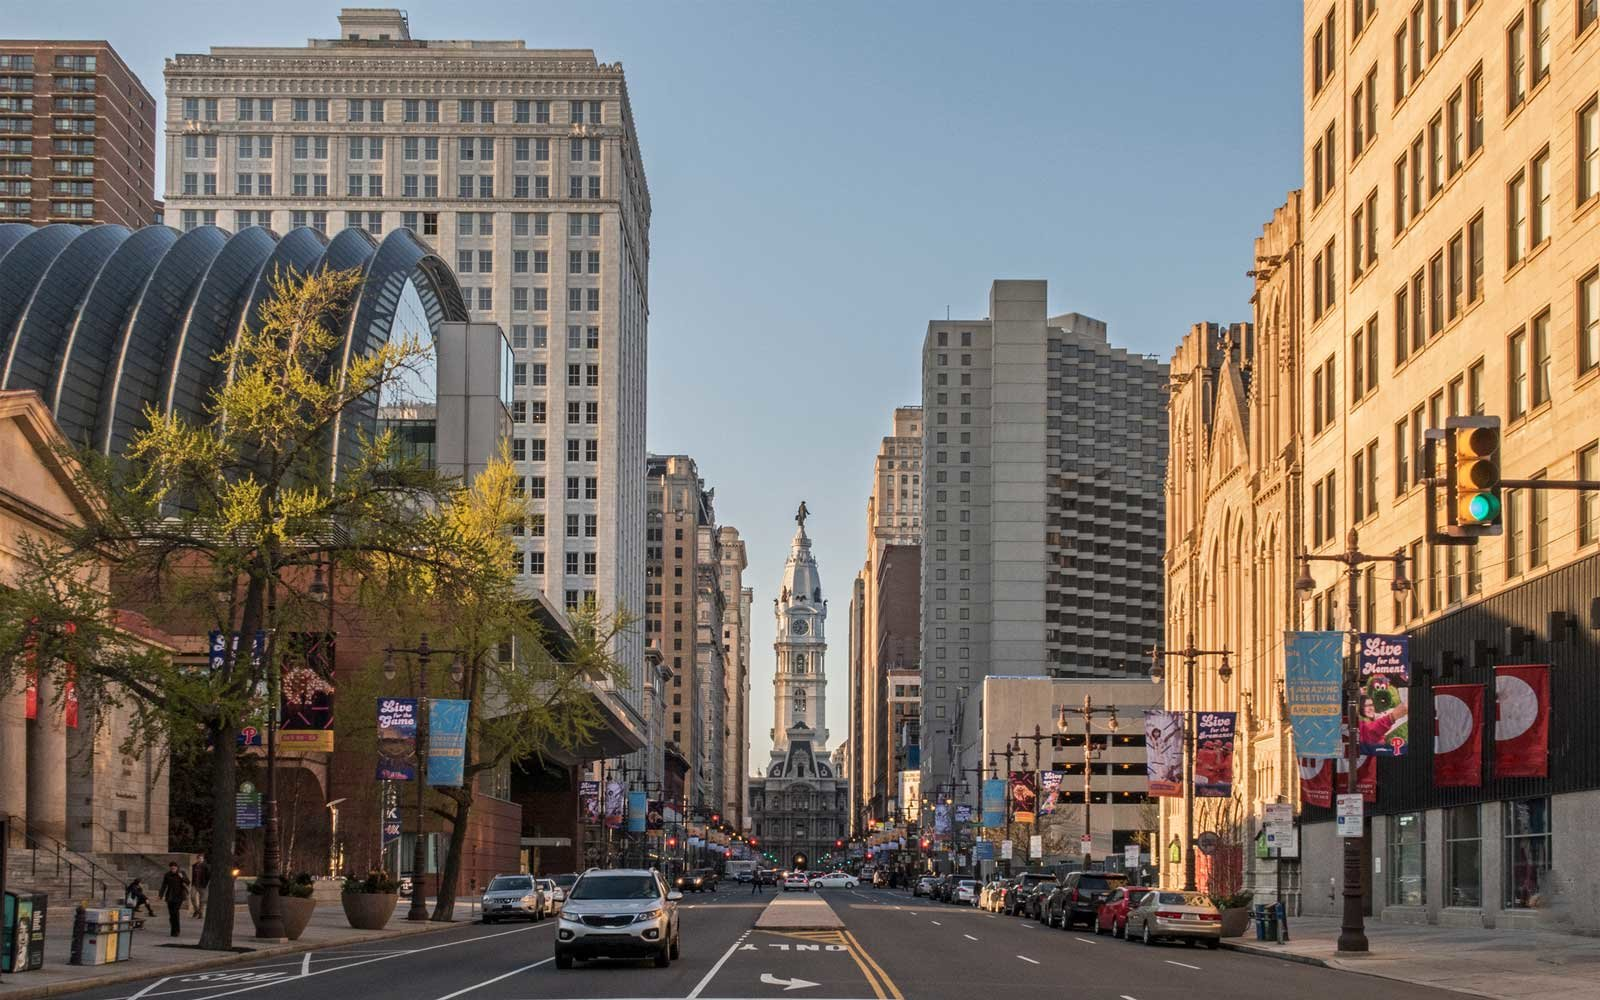 T+L Summer Shortlist: Why Philadelphia Is One of This Season's Hottest Destinations